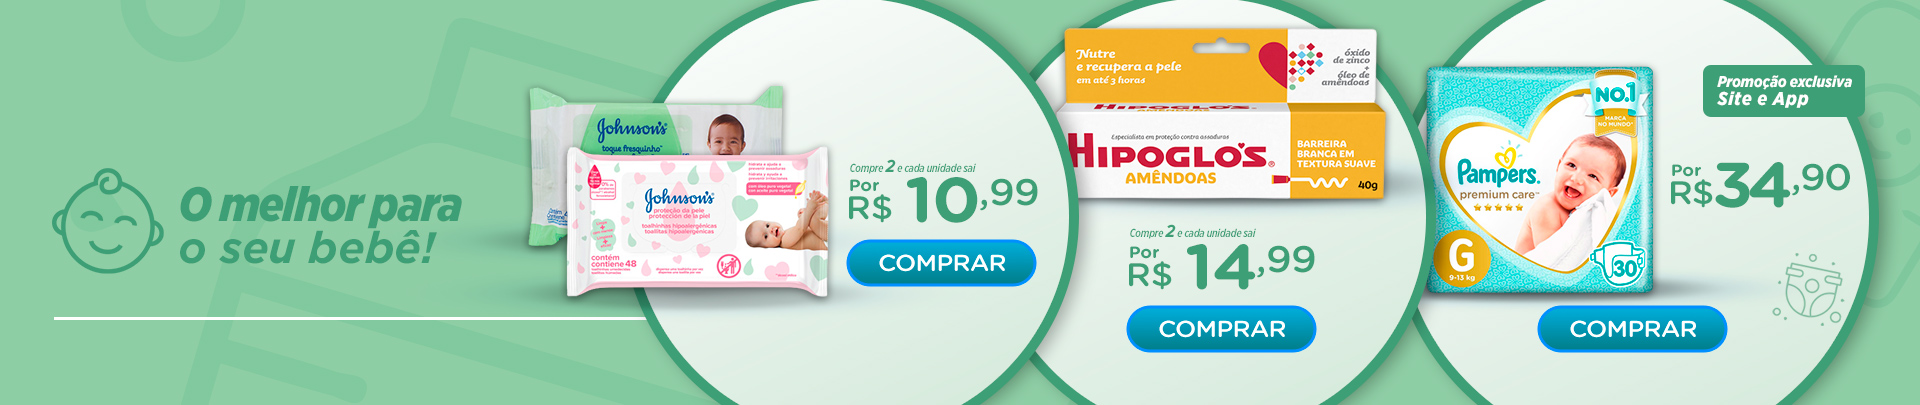 Pampers_Hipogloss